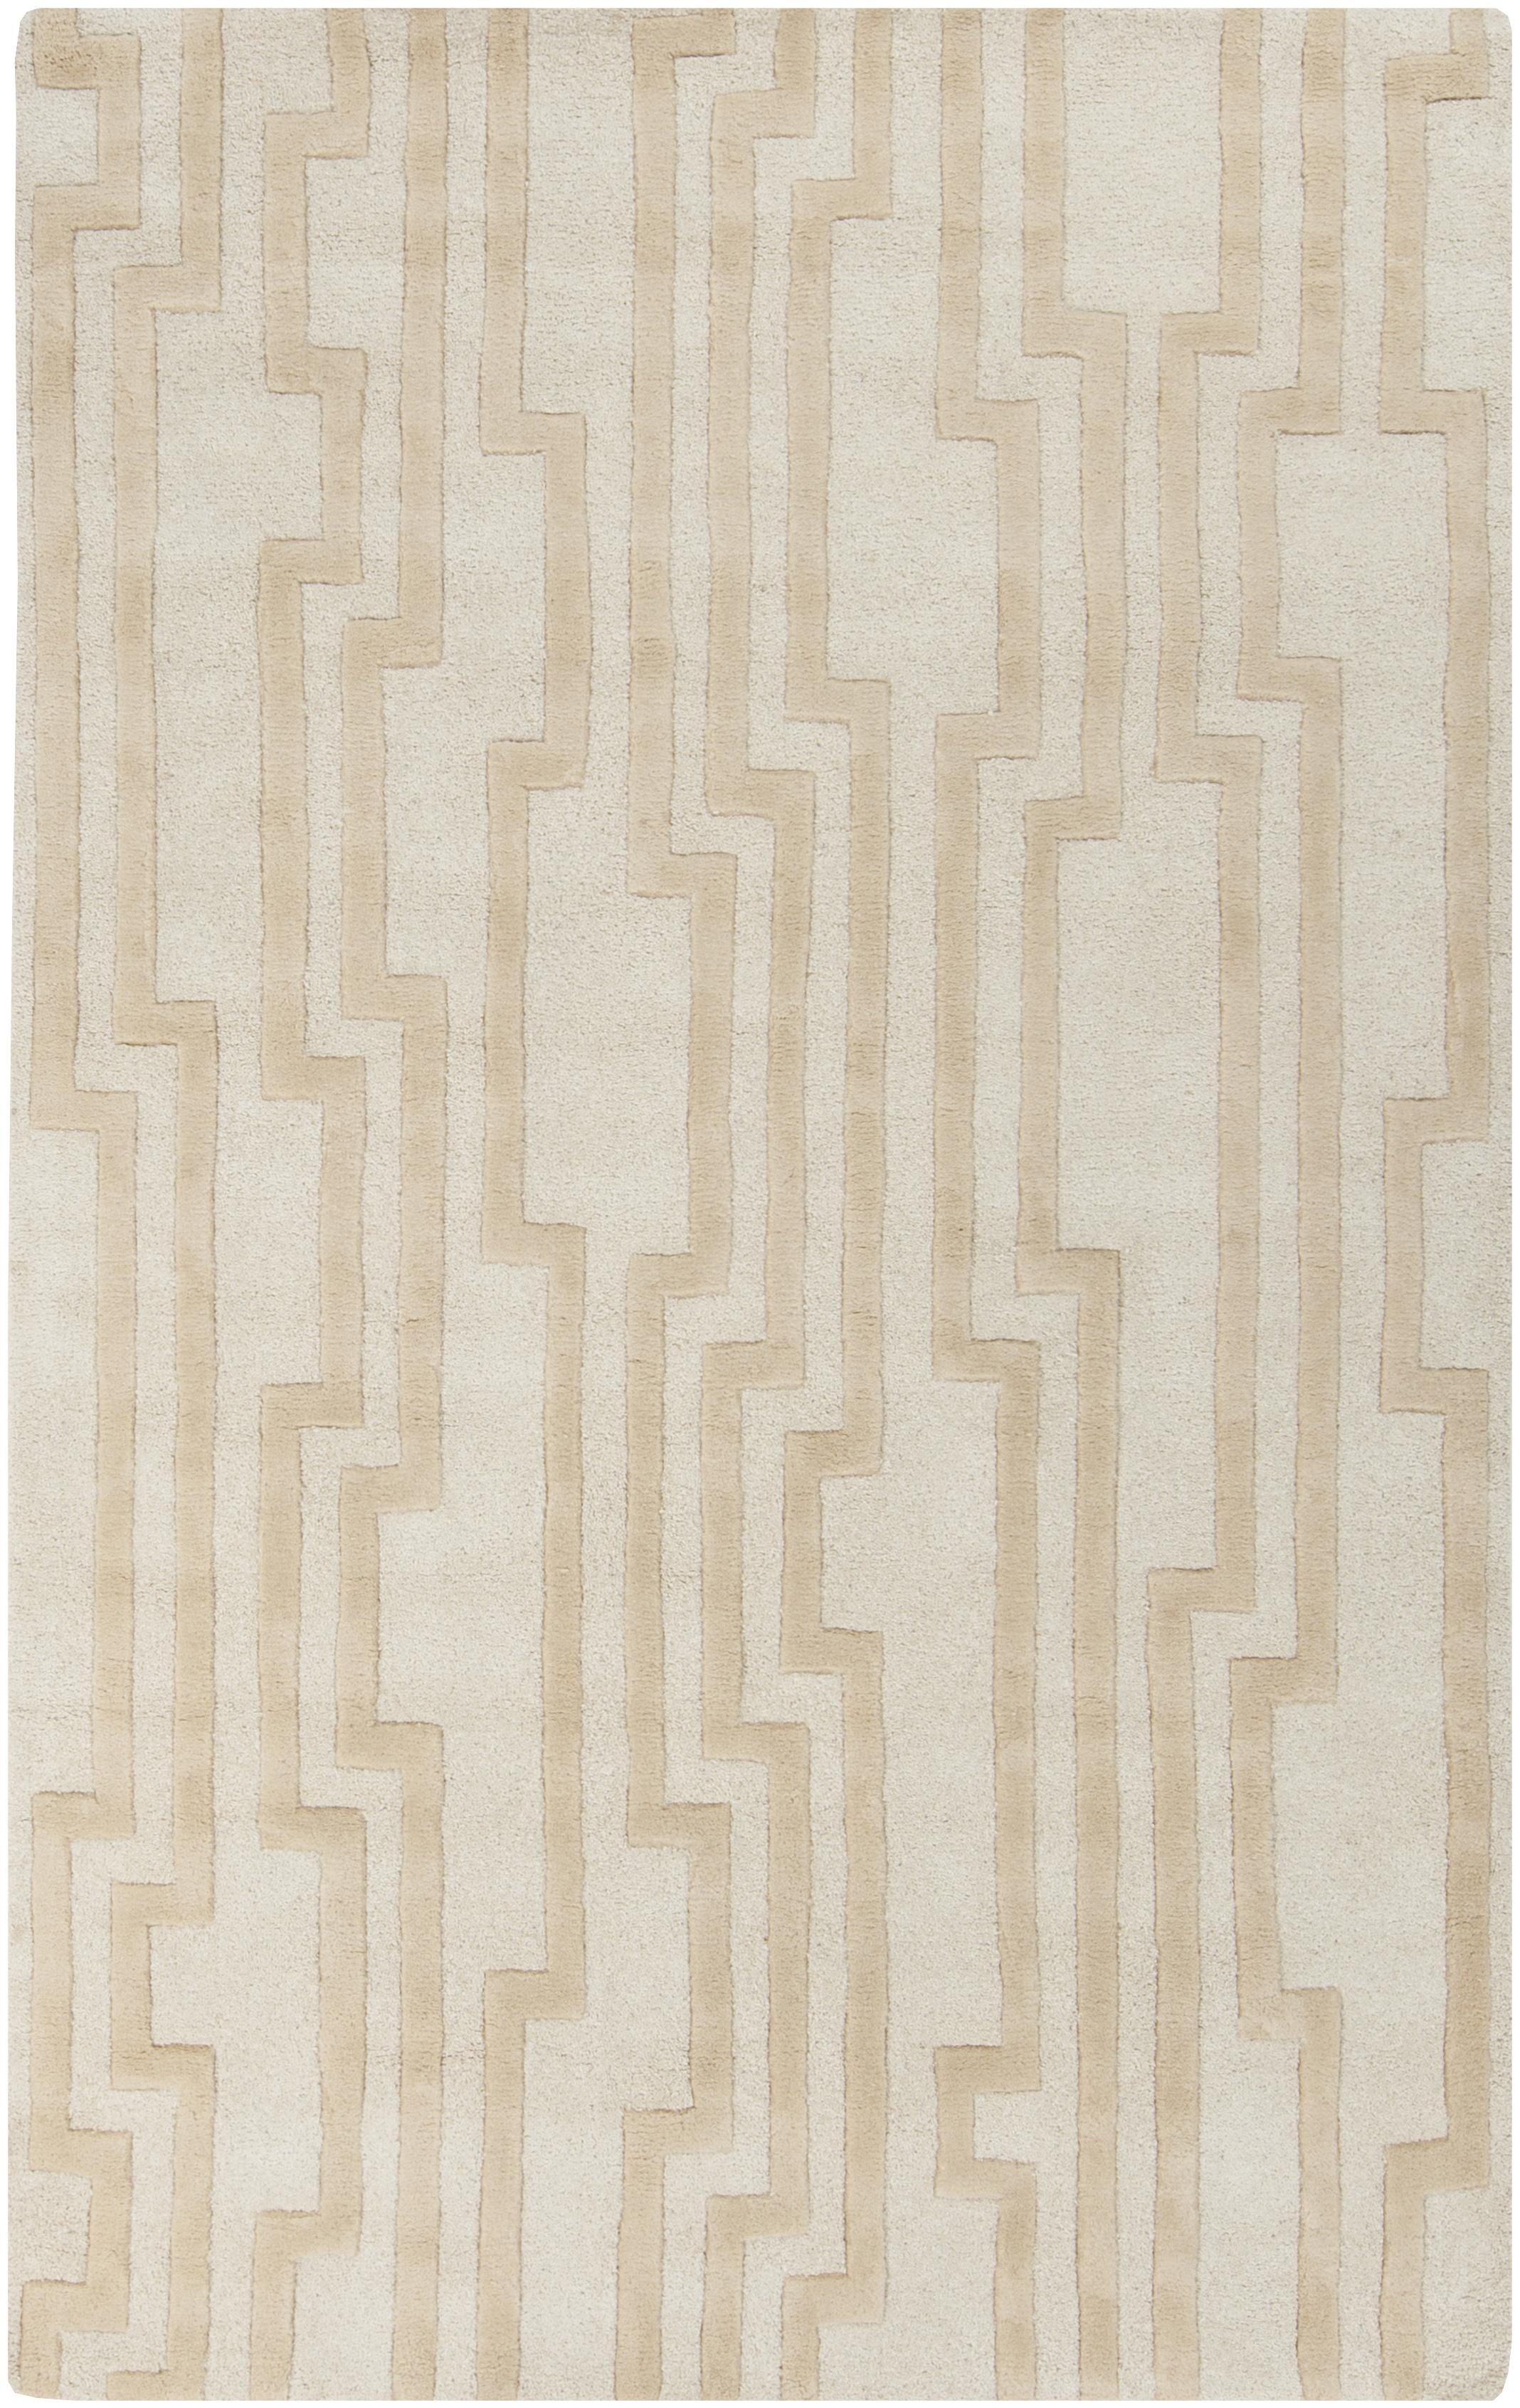 Surya Modern Classics 2' x 3' - Item Number: CAN2021-23